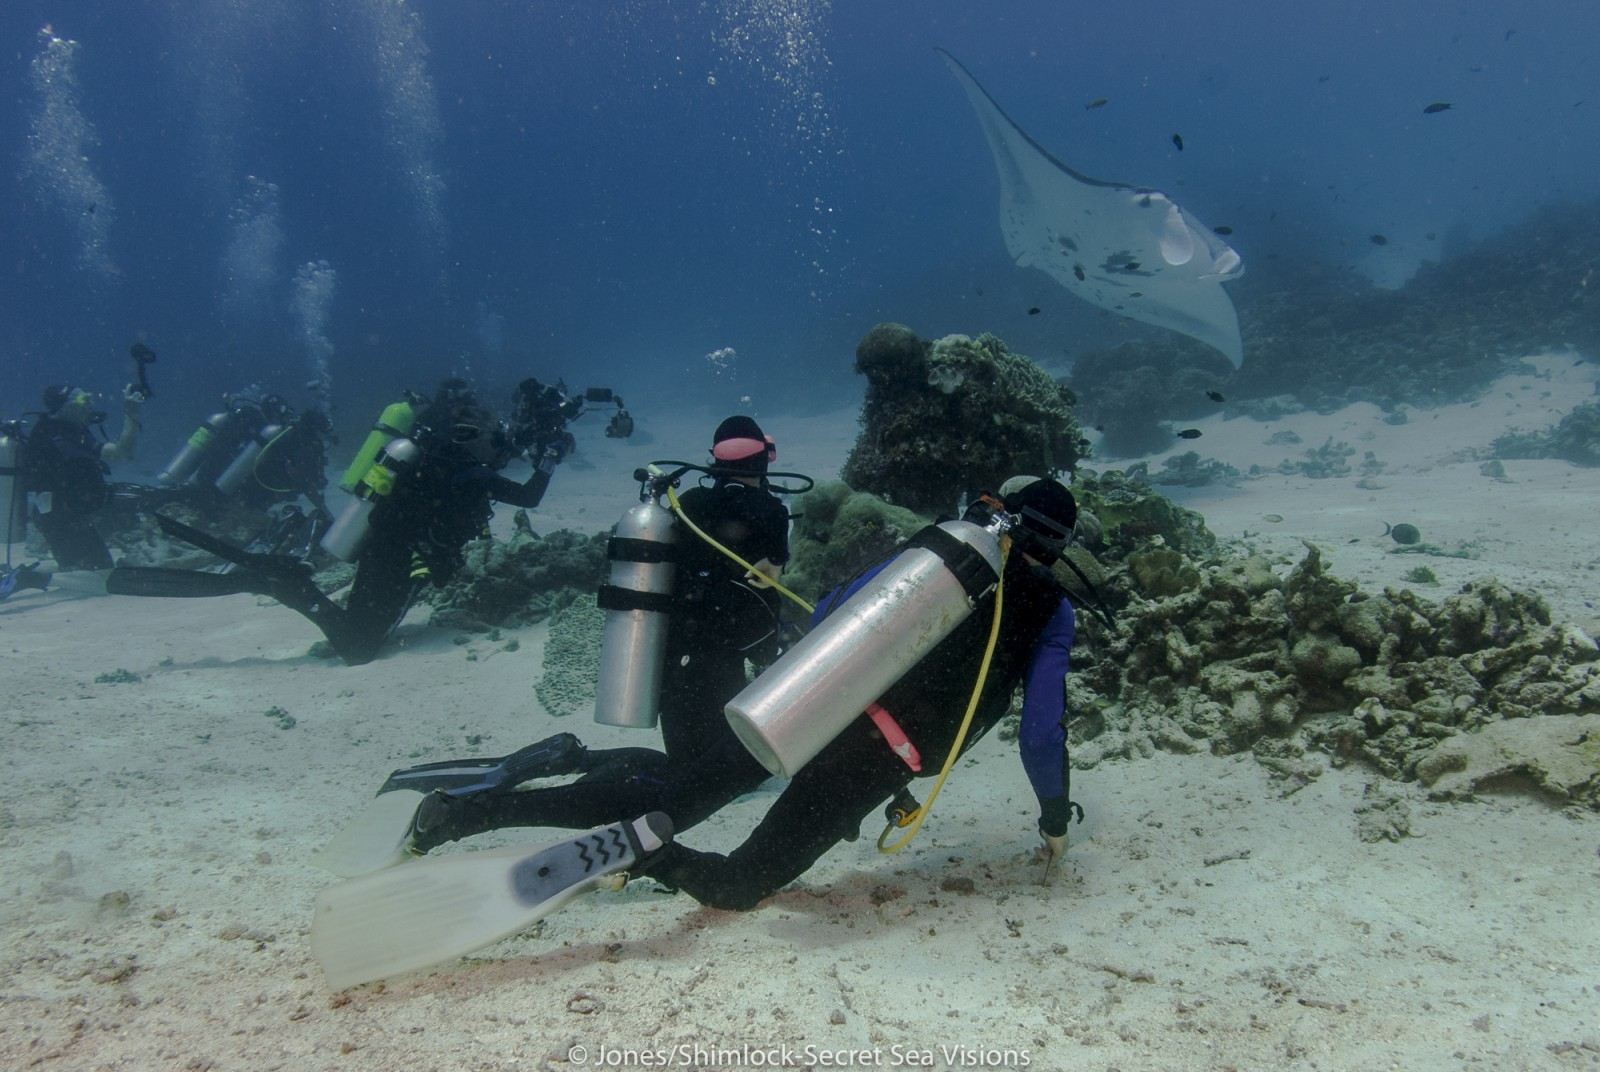 divers-behind-barrier-to-allow-manta-access-to-cleaning-station-1.jpg